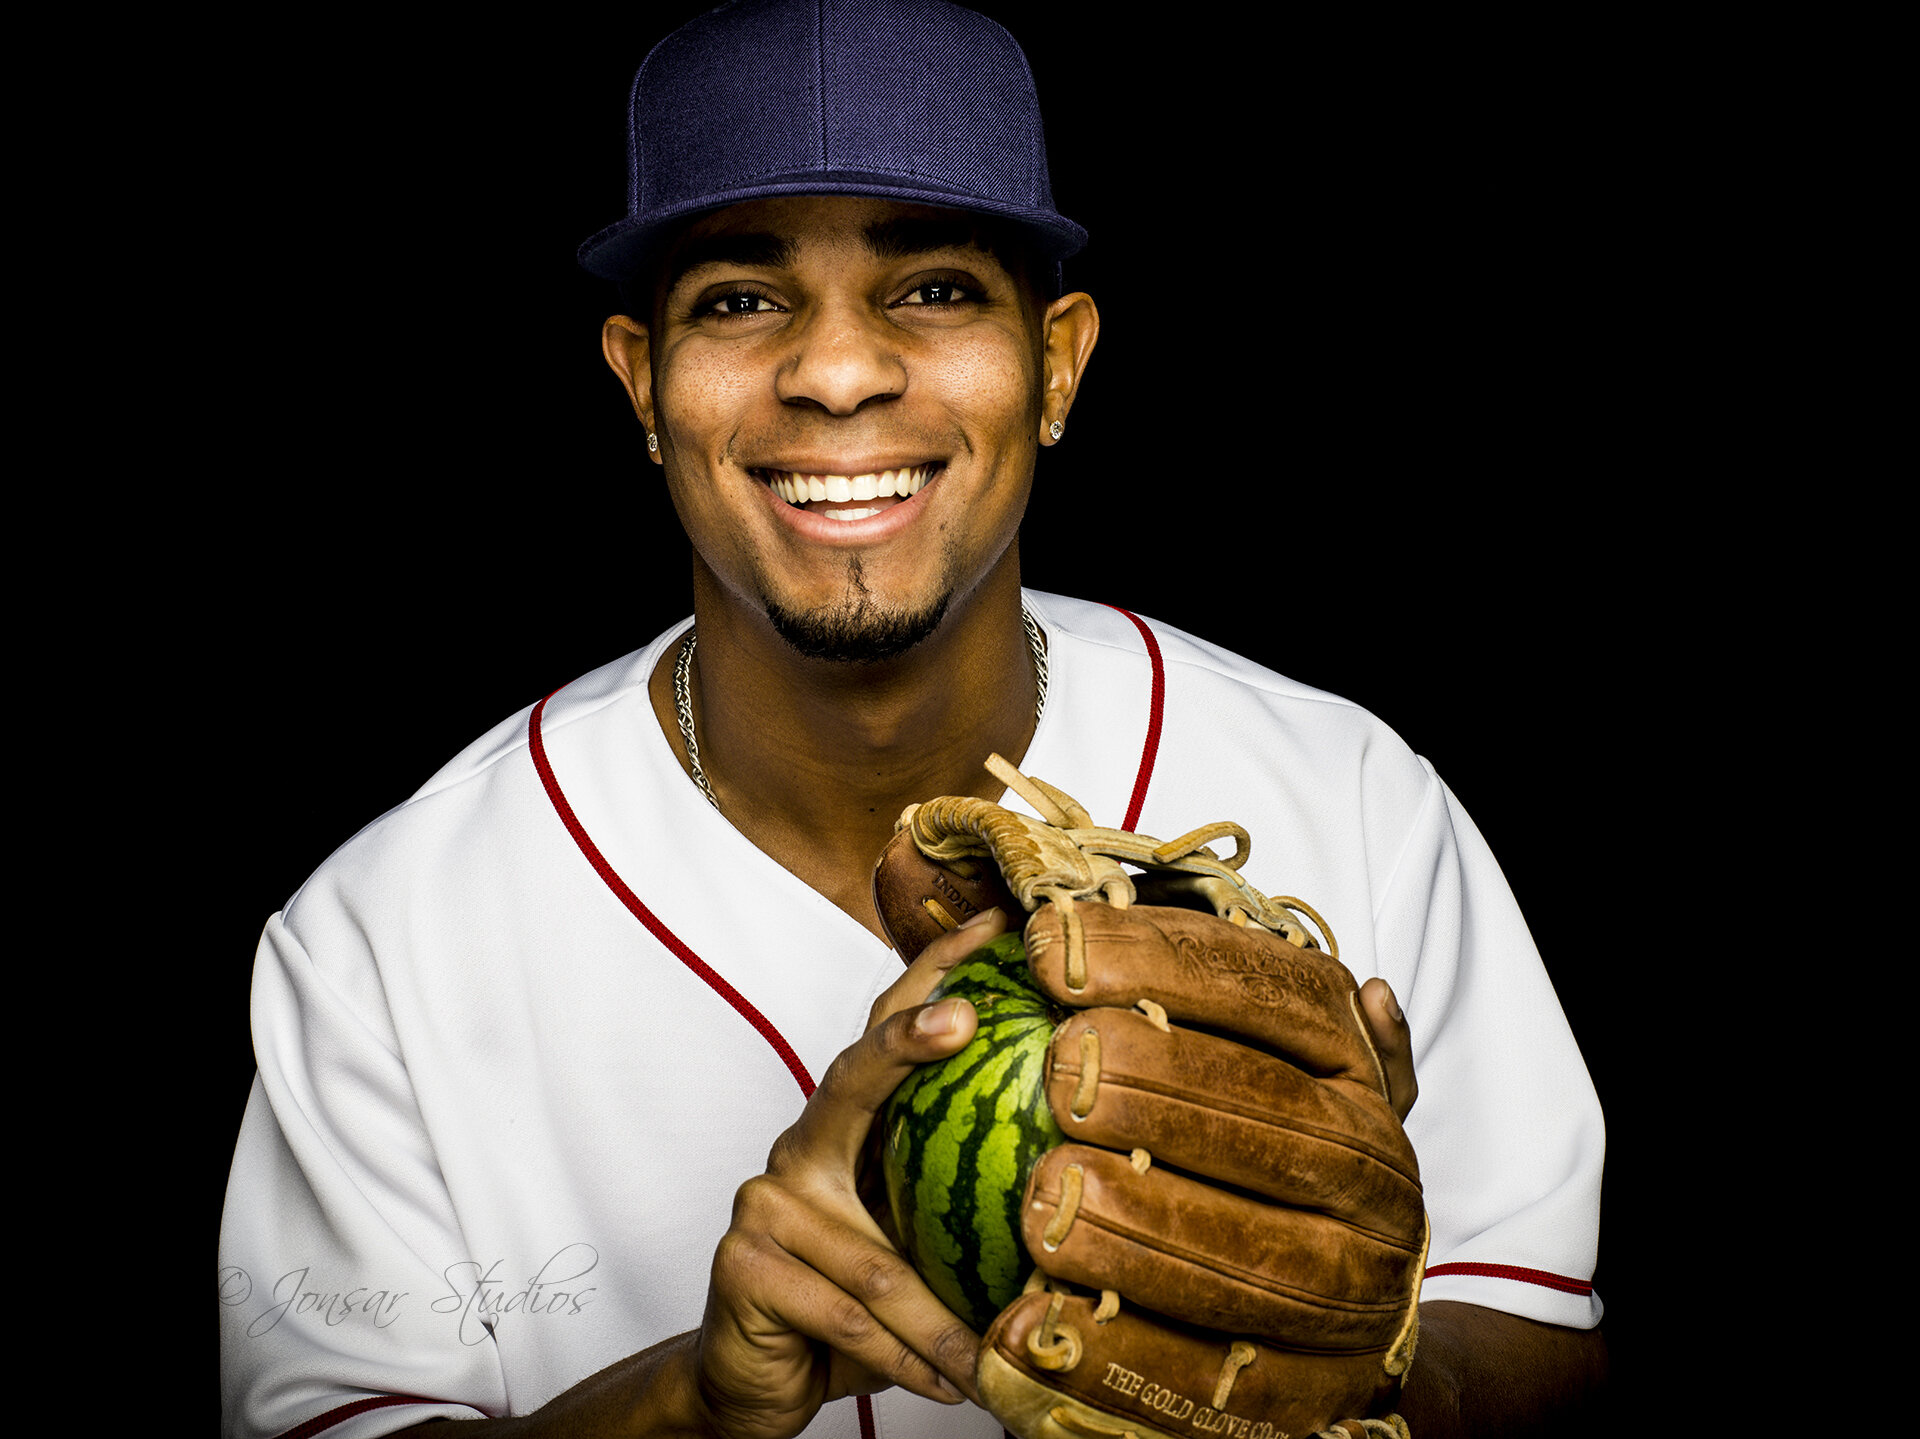 Portrait of Xander Bogaerts with watermelon in his glove